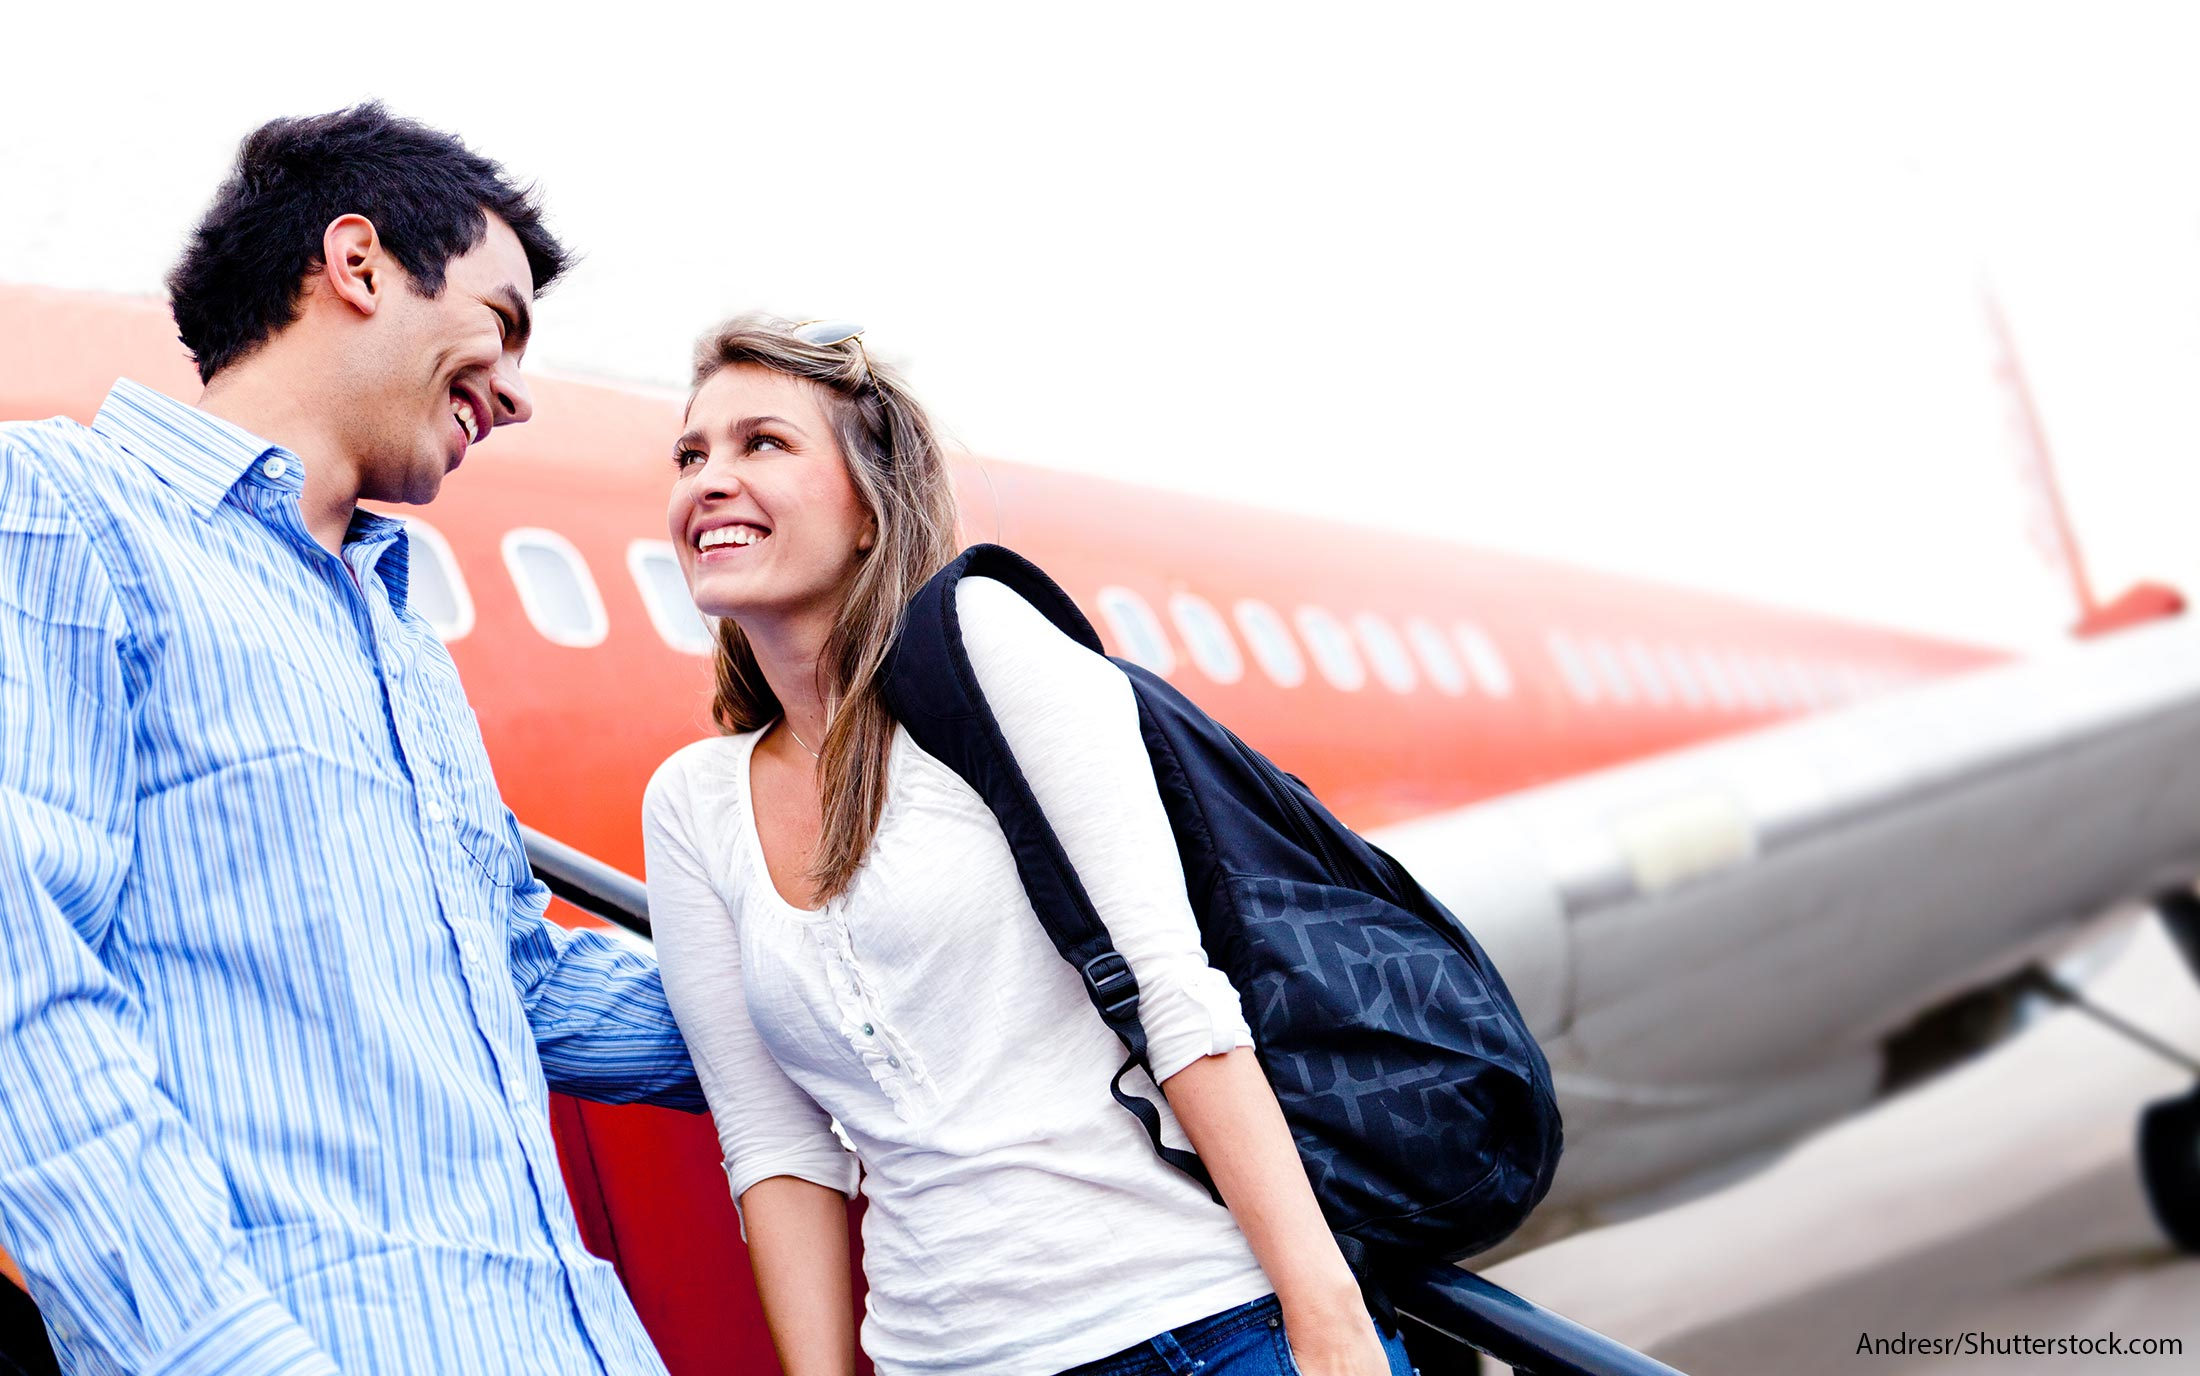 """As airlines adapt to a changing market, travelers are spending more on fees related to flying. In fact, a government report revealed that consumers spent a shocking $7 billion in fees on baggage and flight changes in 2016, according to USA Today. The pay-as-you-go pricing structure means that """"low-cost"""" airlines can quickly become some of the most expensive. But not all airlines expect customers to pay exorbitant fees. GOBankingRates used published airline fee schedules to find baggage fees for major domestic and international airlines with flights to and from the United States, ranking the best airlines based on total fees for carry-on, first checked and second checked bags. Click through to see the airlines with the lowest fees."""